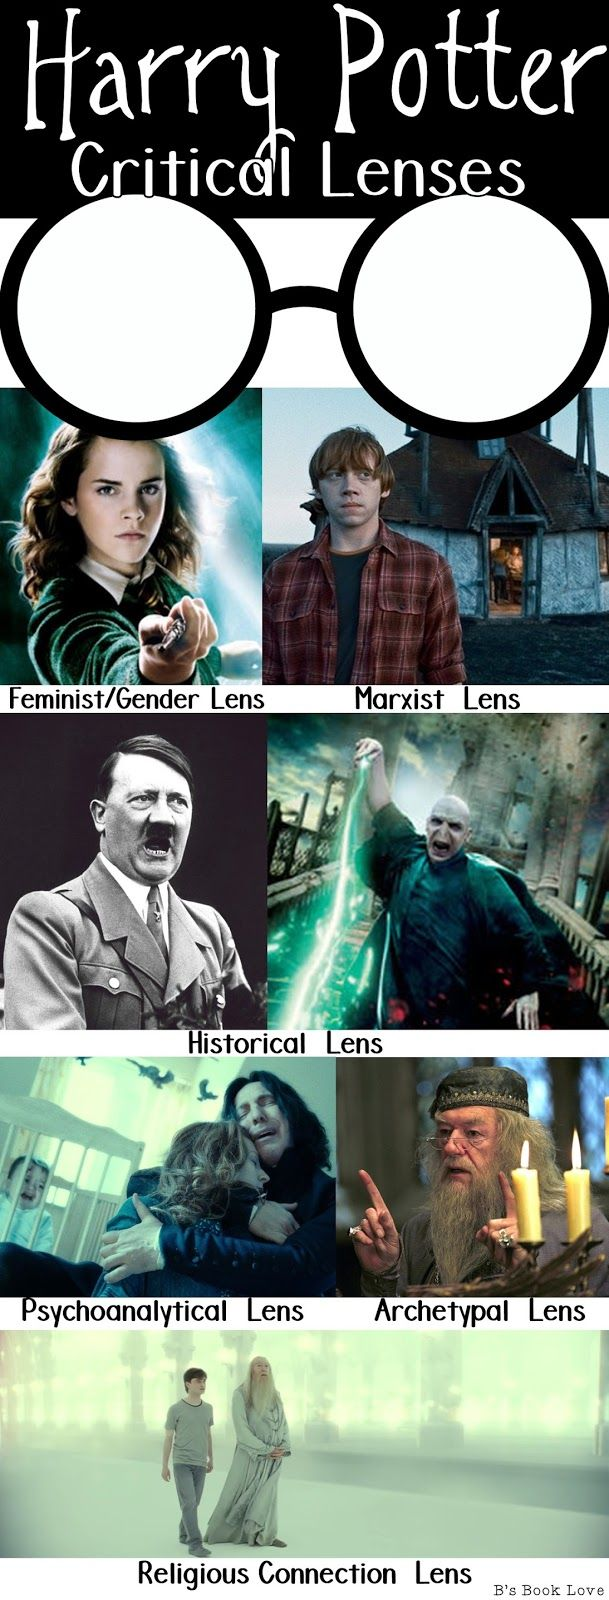 Harry Potter Critical Lenses! ⚡️Detailed examples in the post!